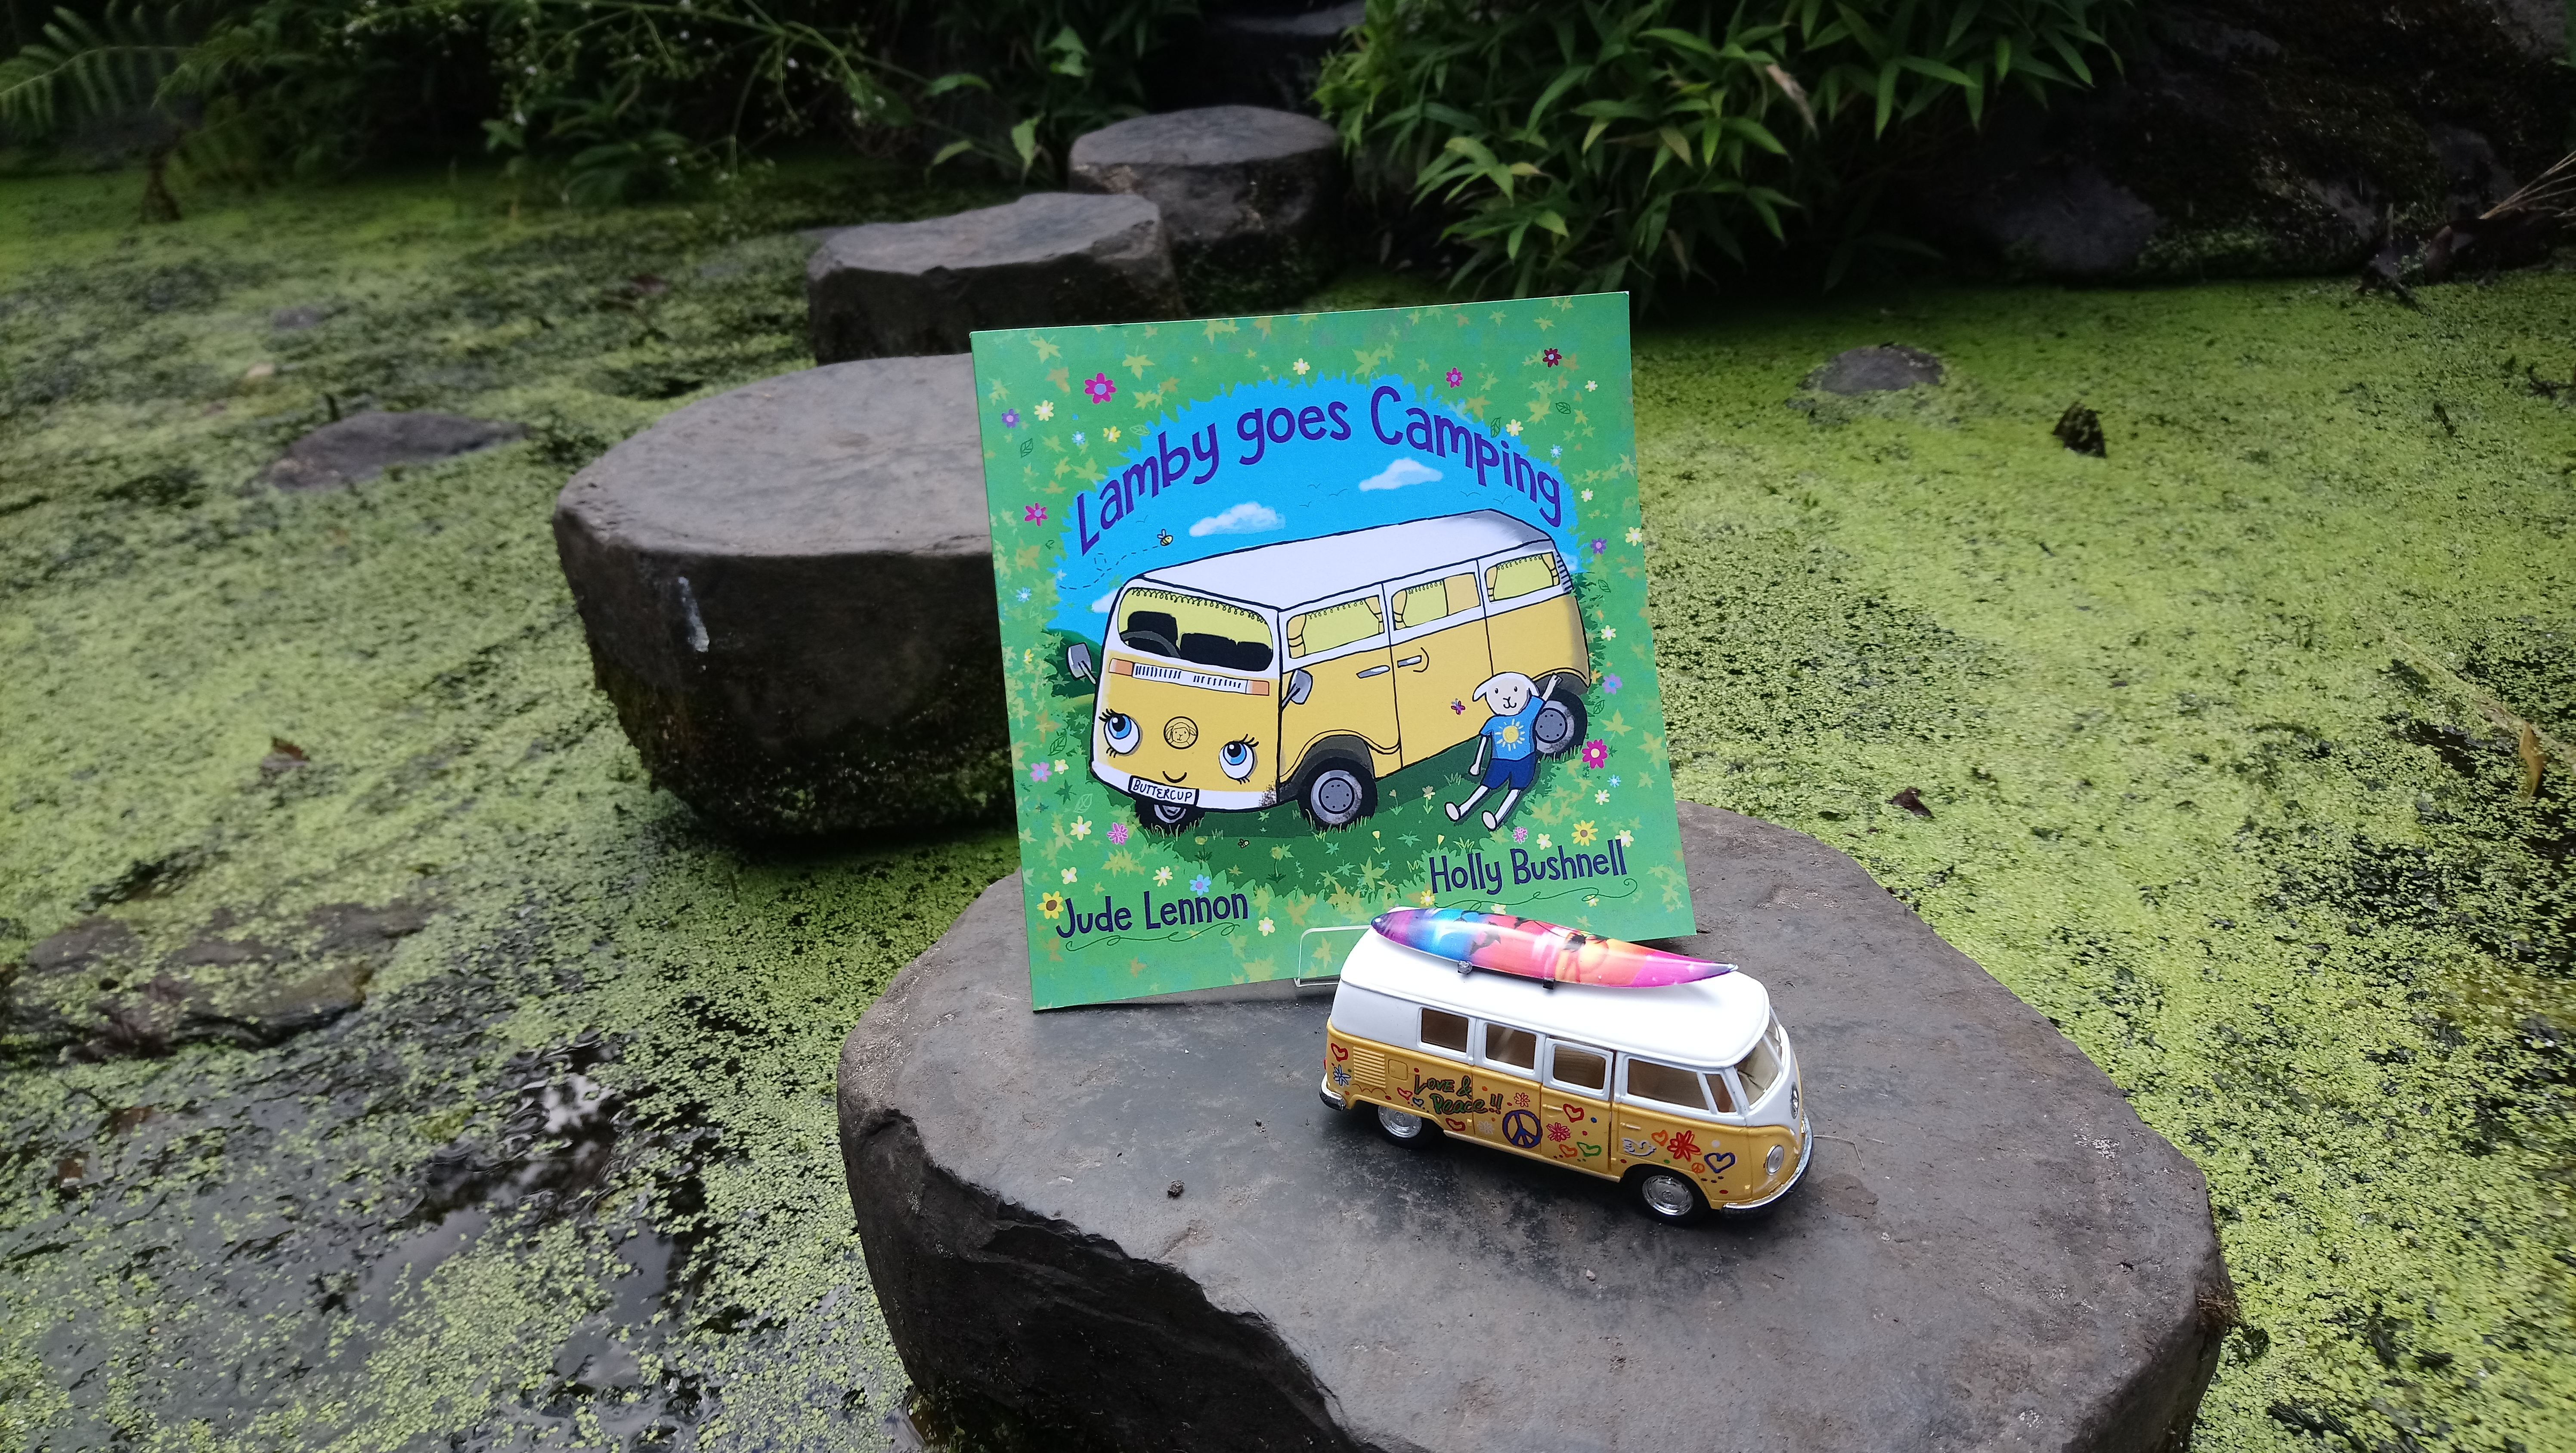 Camping Awareness Day Photo Of Toy Camper Van